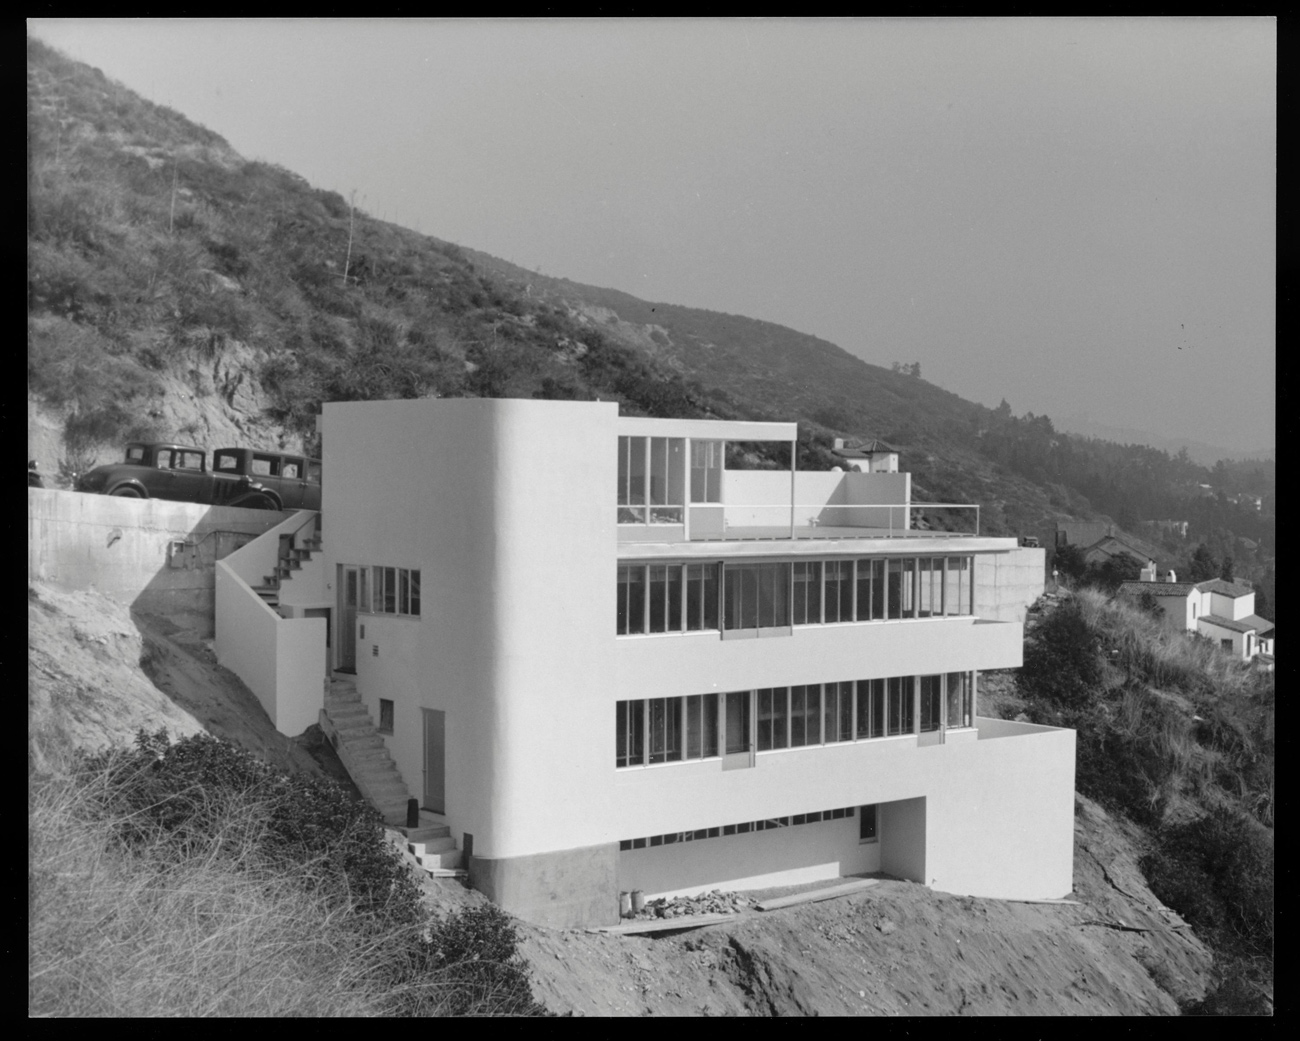 Black and white photo of four story home built into side of cliff overlooking a canyon